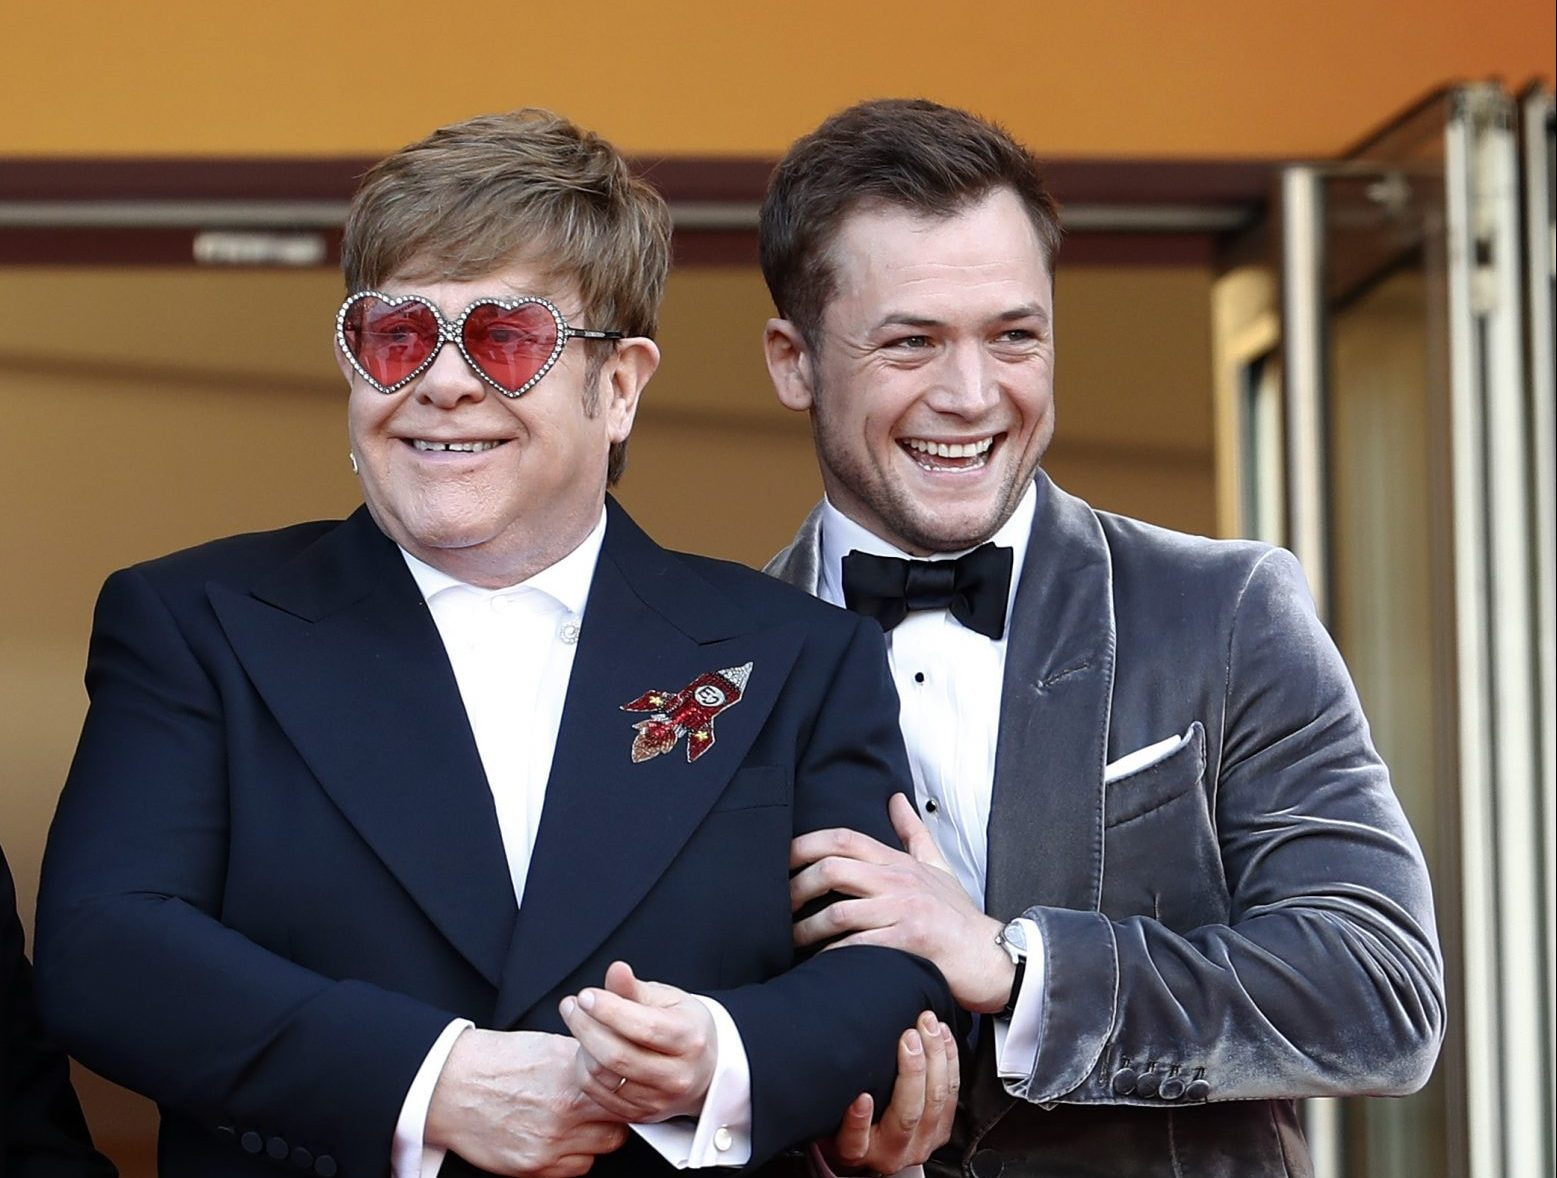 Elton John Memoir: Taron Egerton to Narrate Audiobook Edition